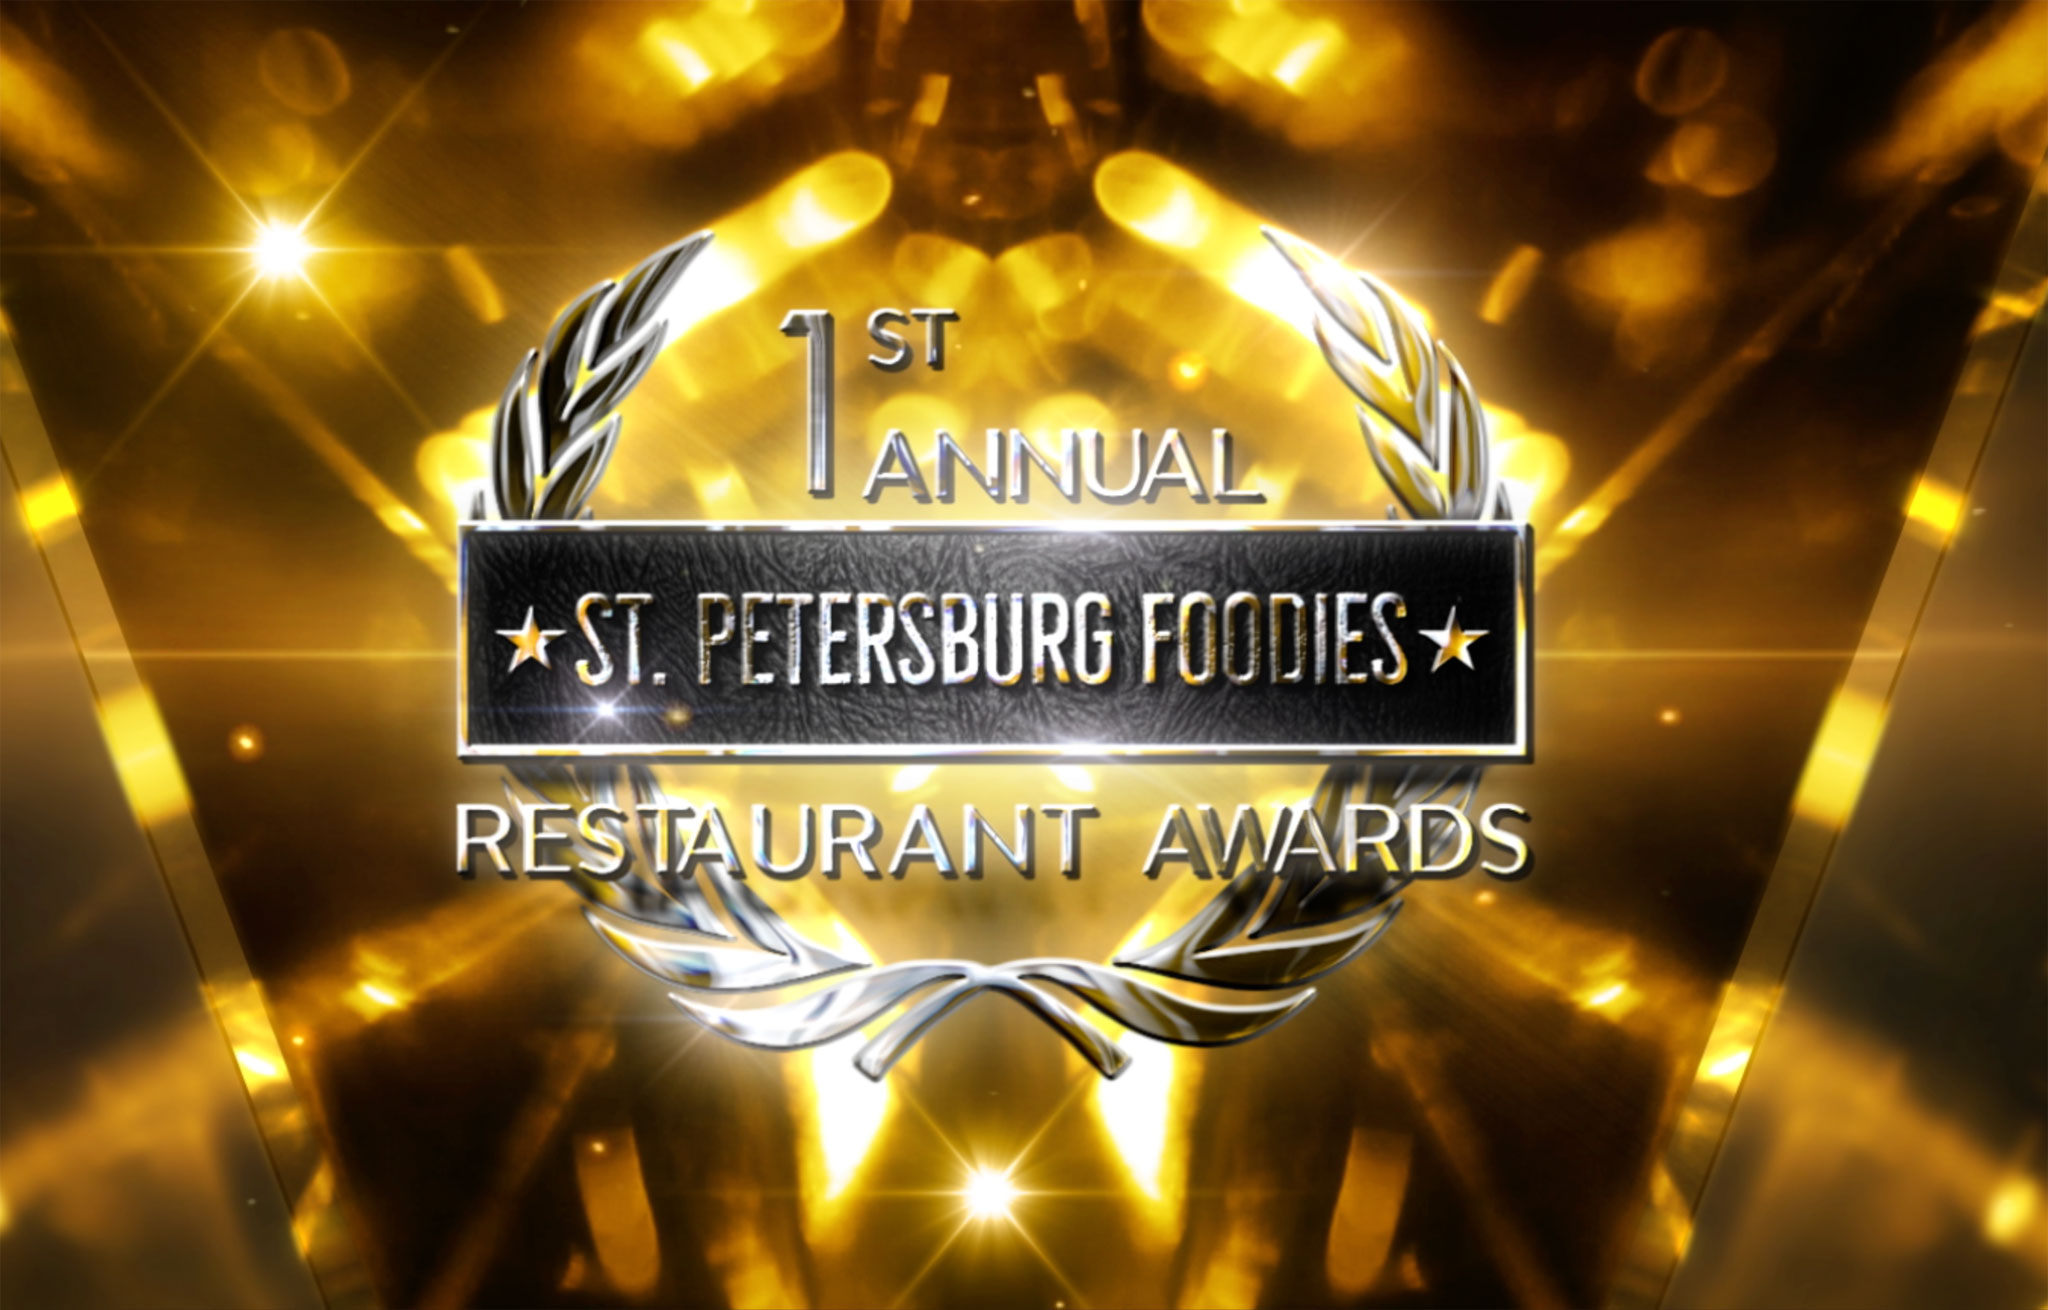 1st Annual St. Petersburg Foodies Restaurant Awards